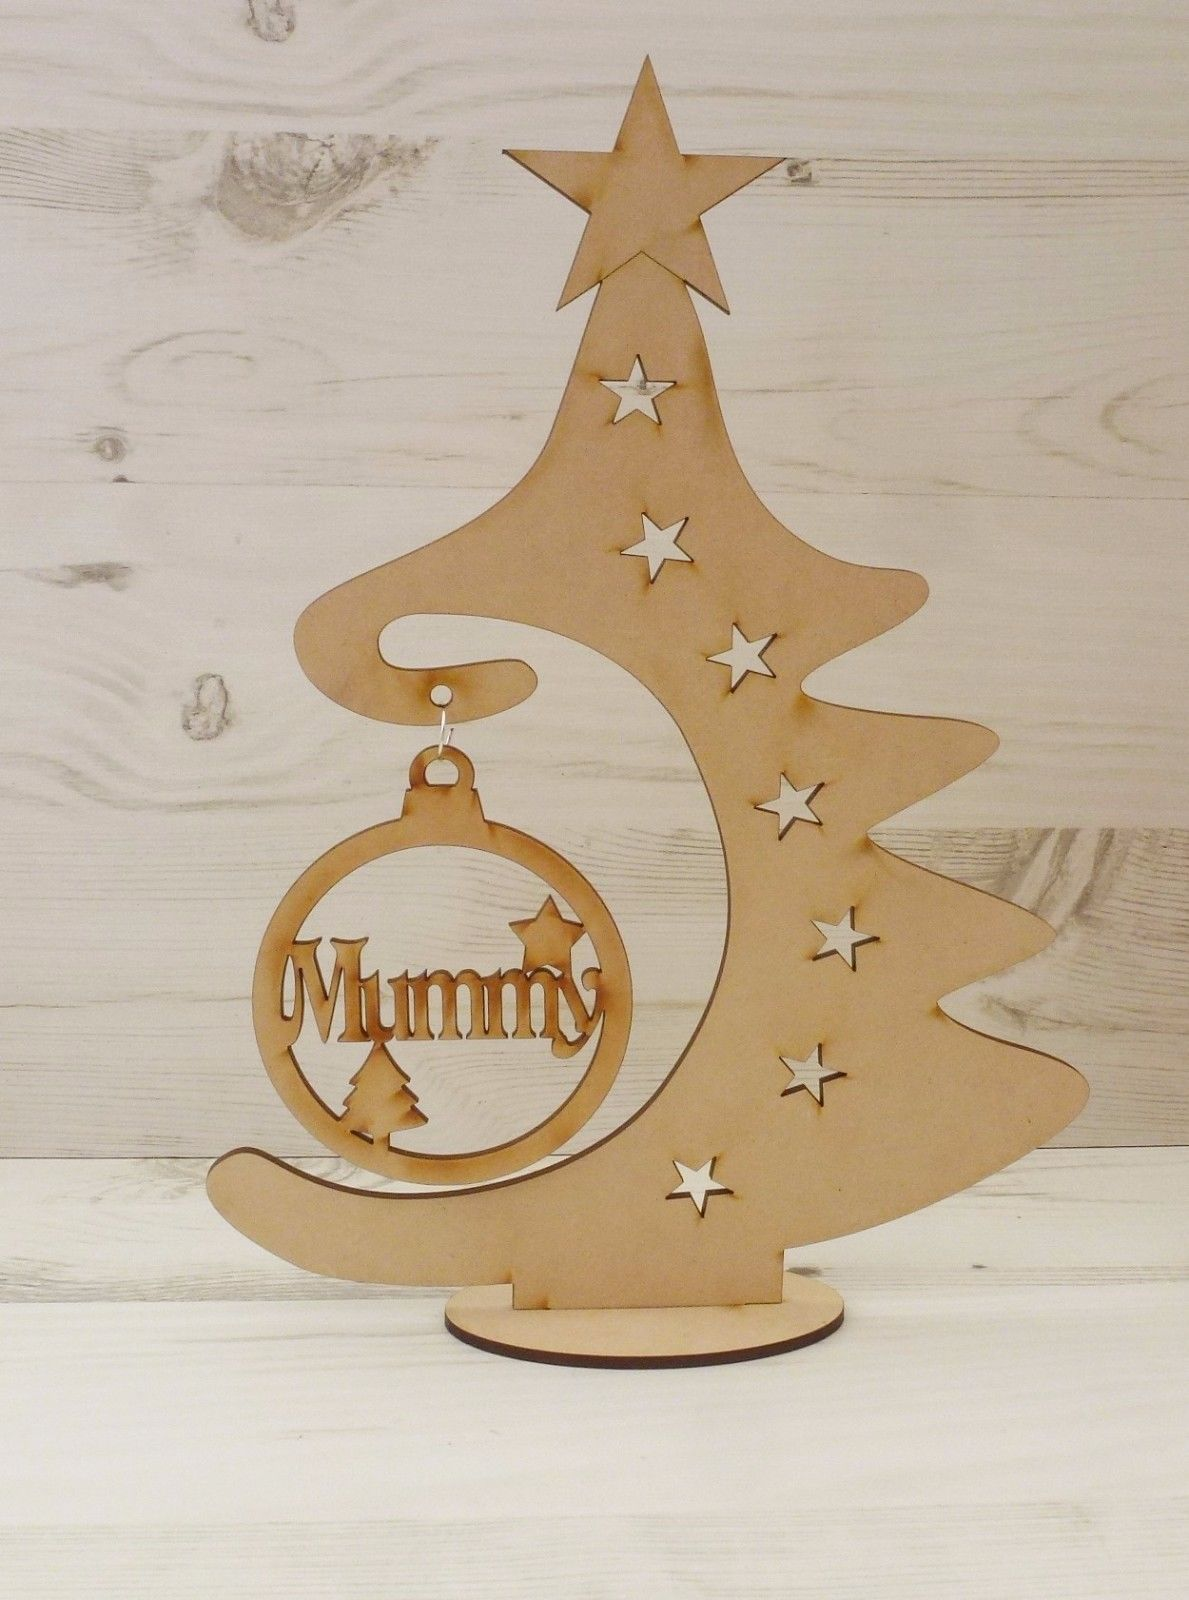 Tree Christmas Bauble Hanger Free Standing Plaque Art Mdf Wooden View More On Modern Christmas Ornaments Mdf Christmas Decorations Diy Christmas Baubles